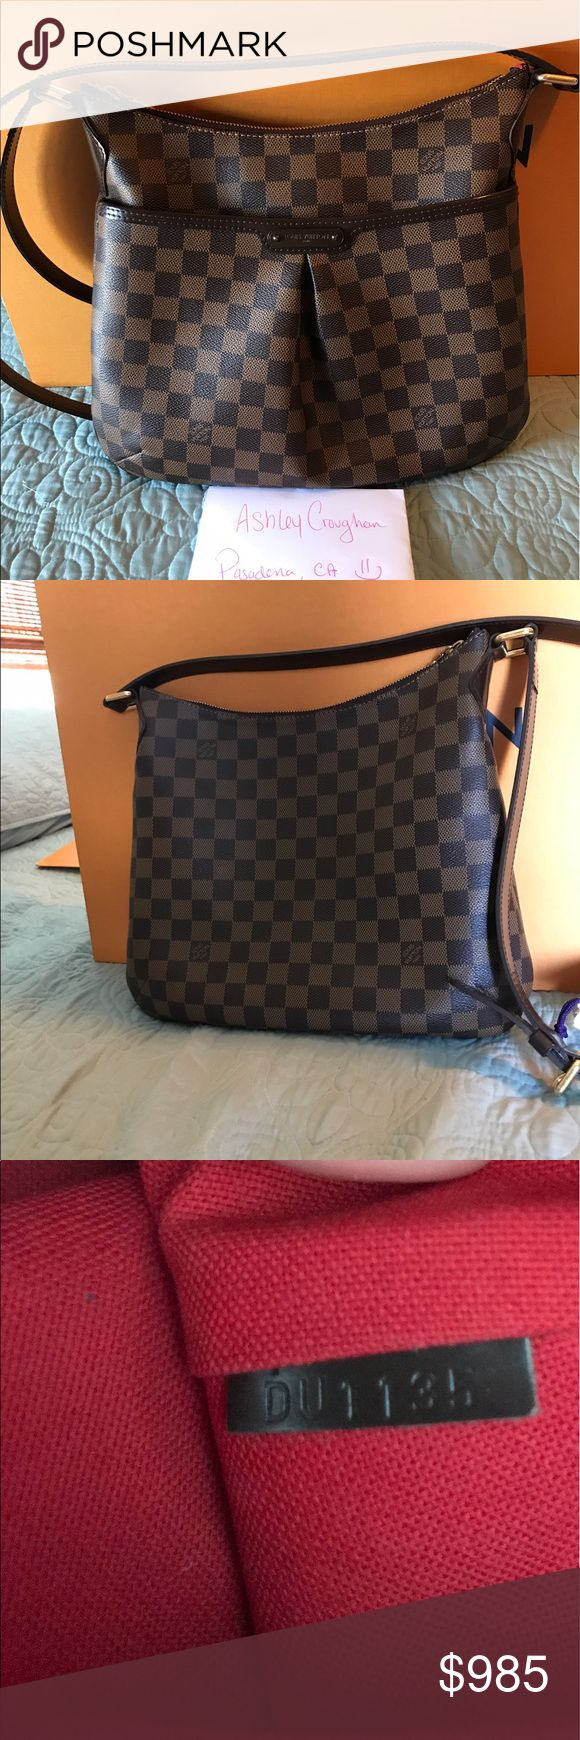 🌸Authentic Louis Vuitton Bloomsbury Pm 🅿️ay 🅿️al  invoiced only due to high fees 😏 Date code DU1135 Made in France  Sold out online This beauty is in great condition!  *Hardware still shiny  *zipper works perfect *no rips or tears on canvas  *Interior is clean accept for a light white mark inside front pocket. See pics.  *slight rubbing on corners nothing major.  Only comes with non Lv dust bag as shown in pics. Thanks for looking! 💕😊 Louis Vuitton Bags Crossbody Bags